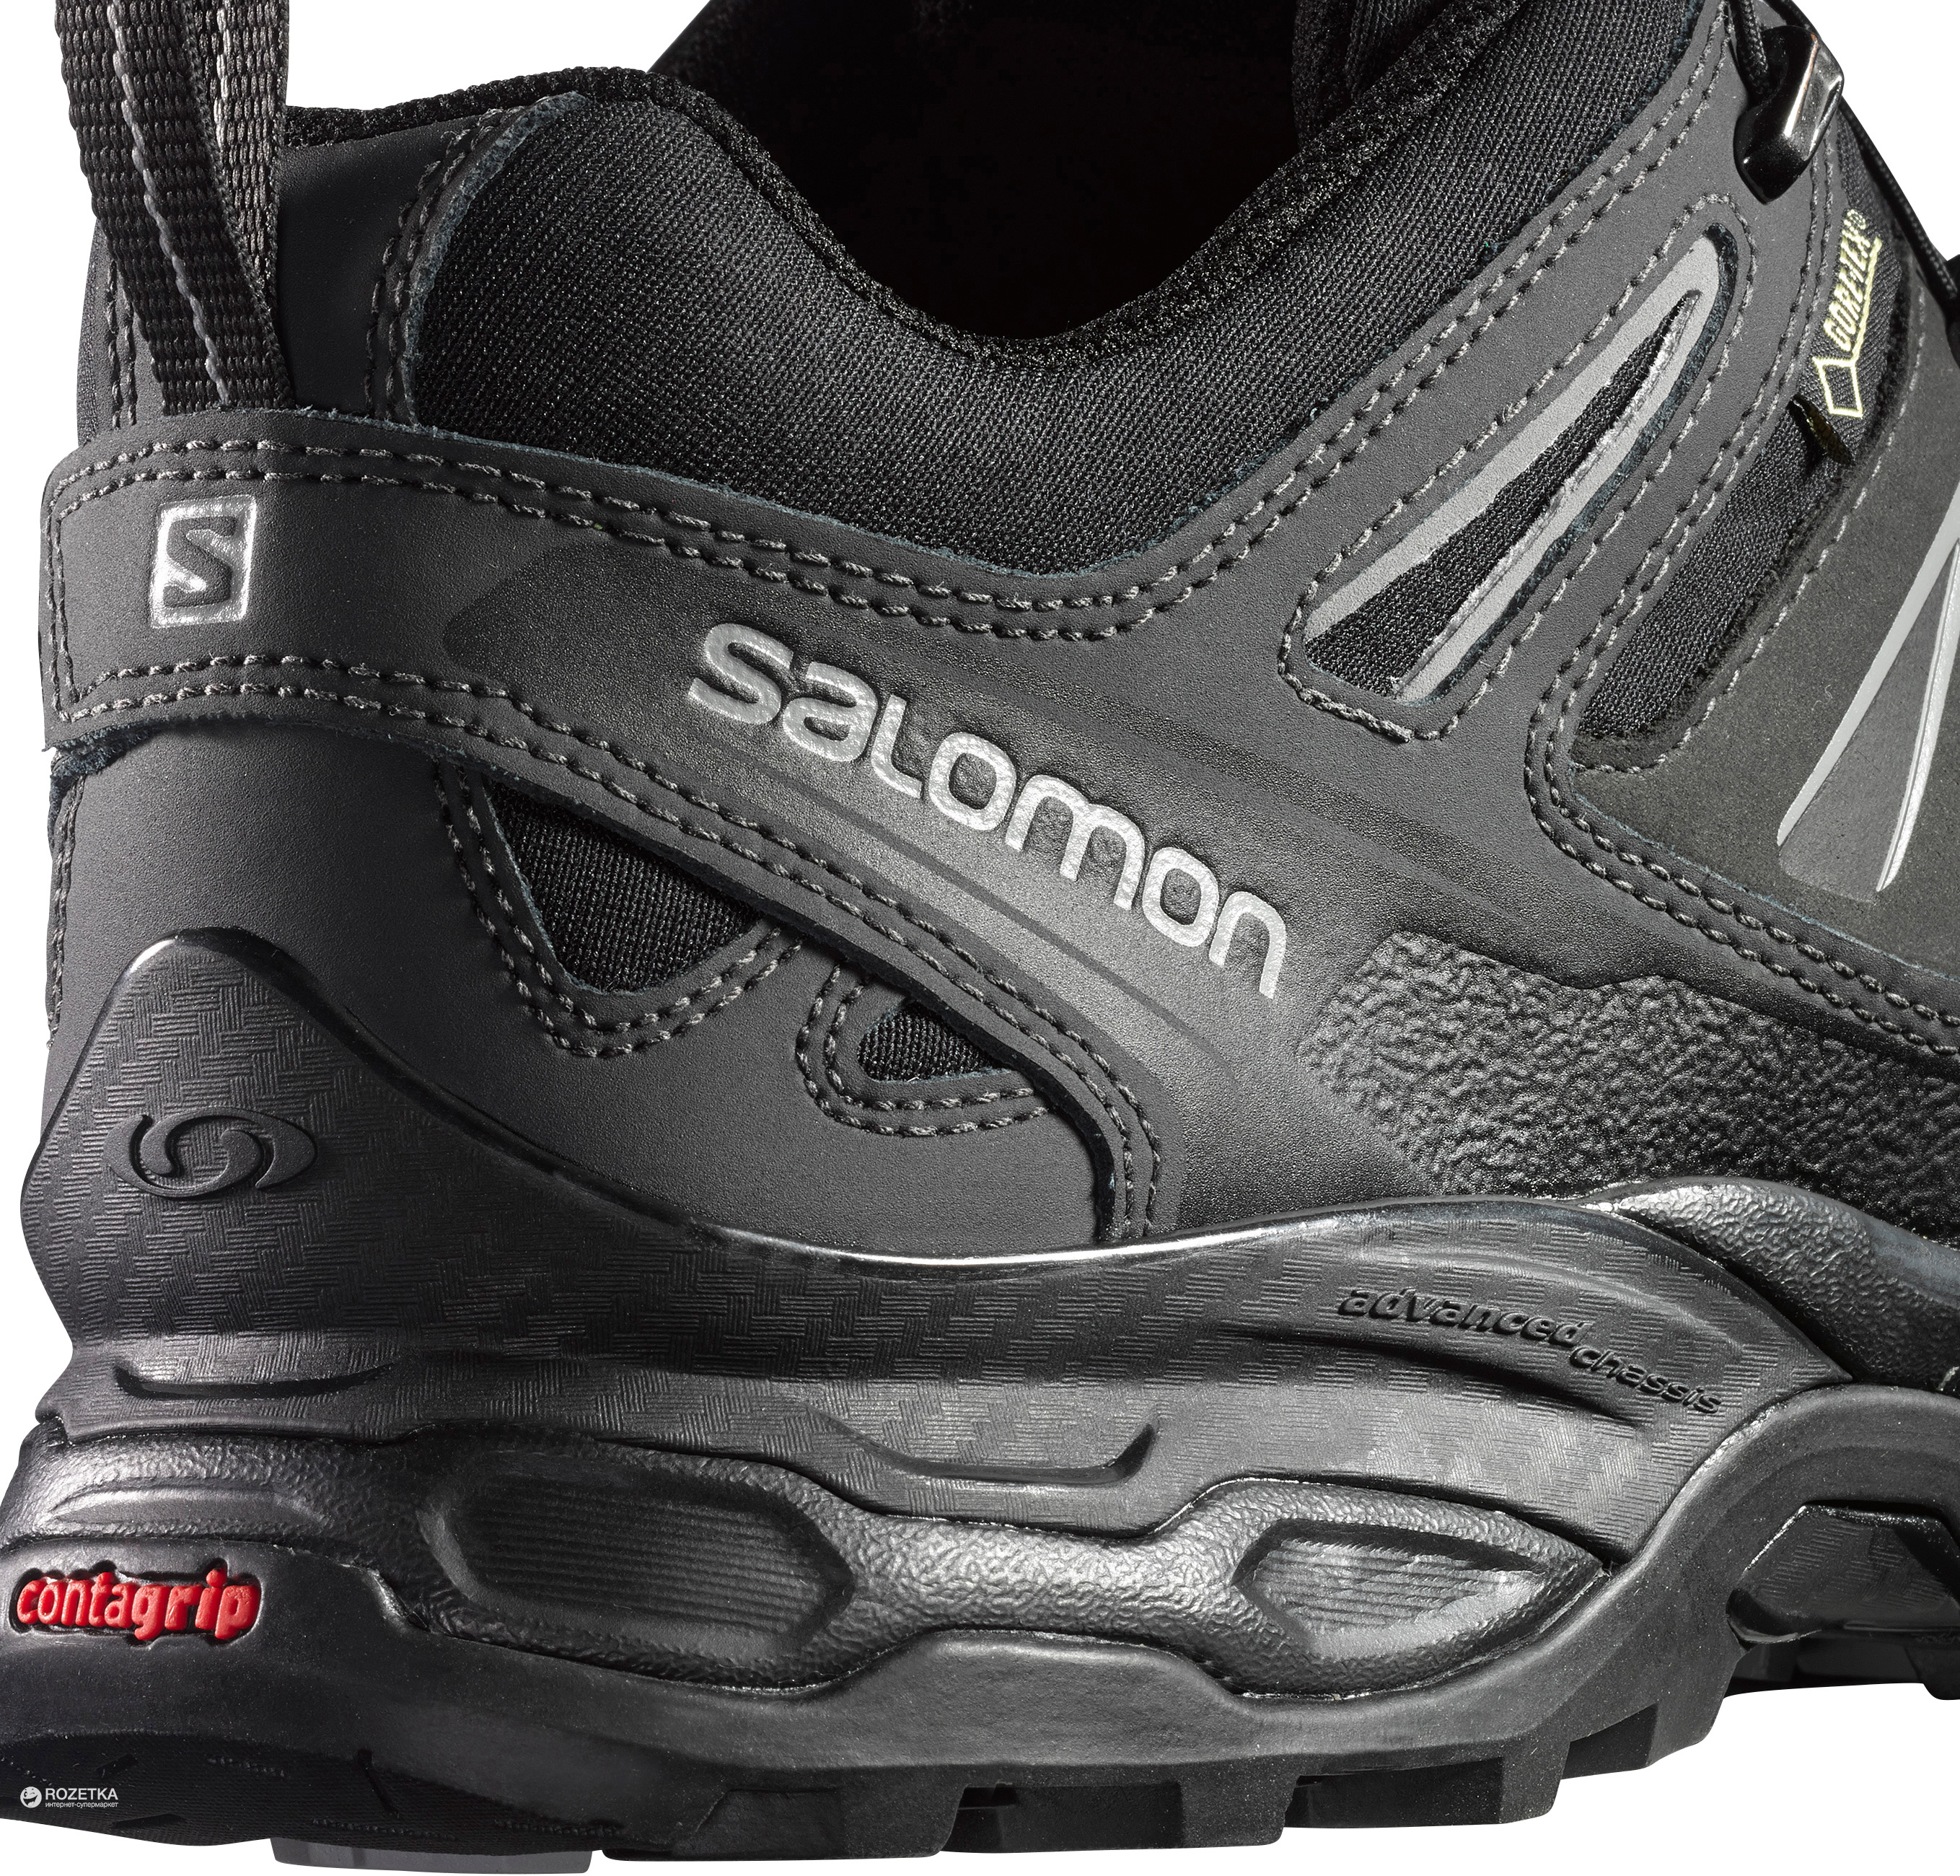 0beda960 Кроссовки Salomon X Ultra Ltr Gtx Asphalt/Black/Ptr s369024-9.5 44 28